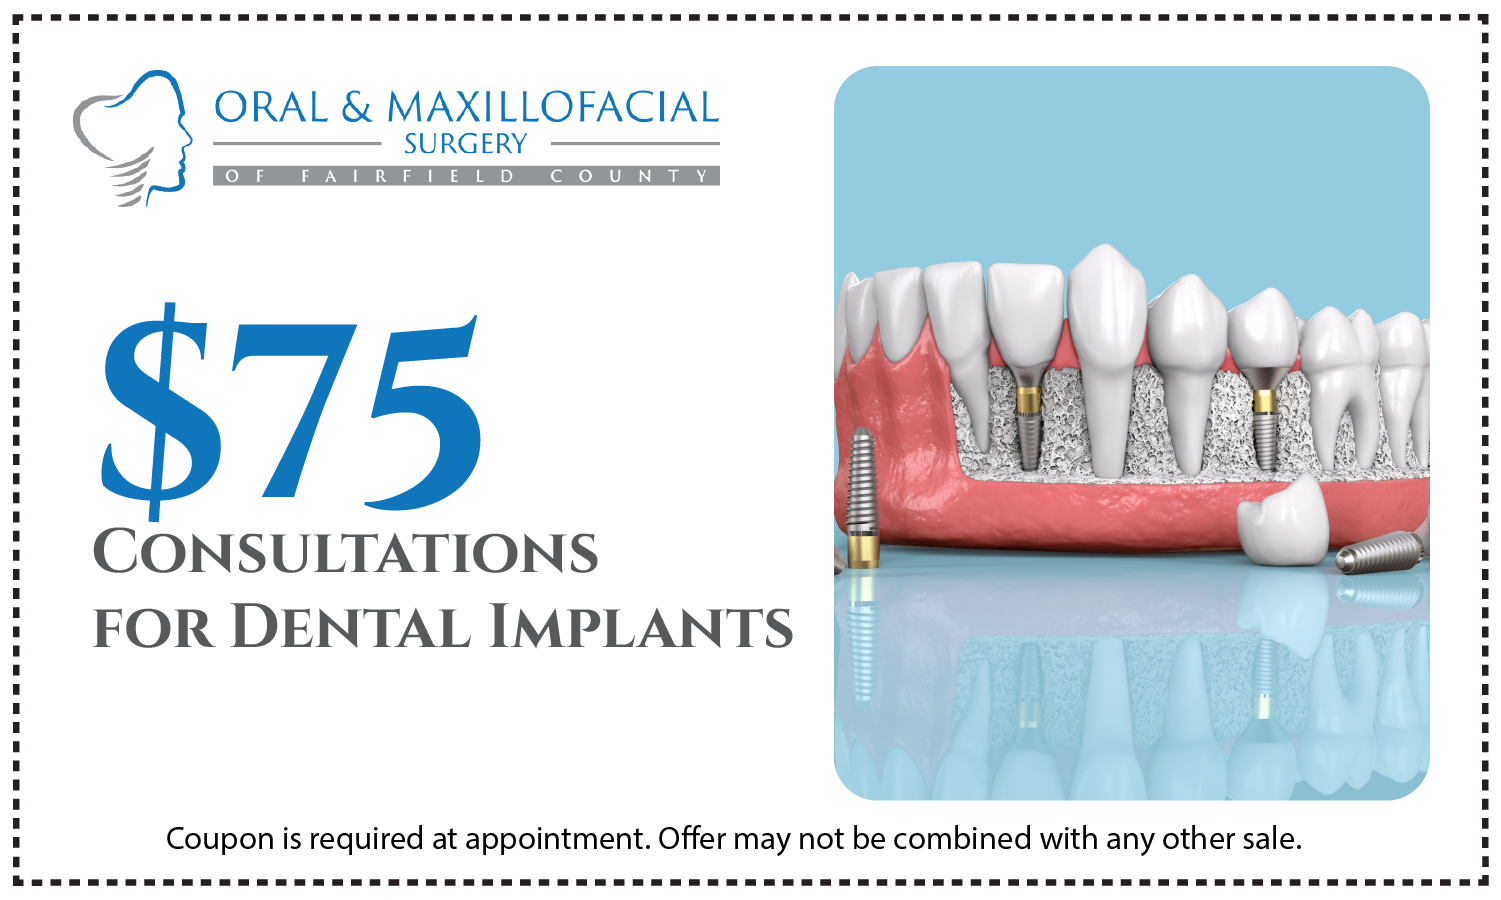 coupon for a dental implant consultation